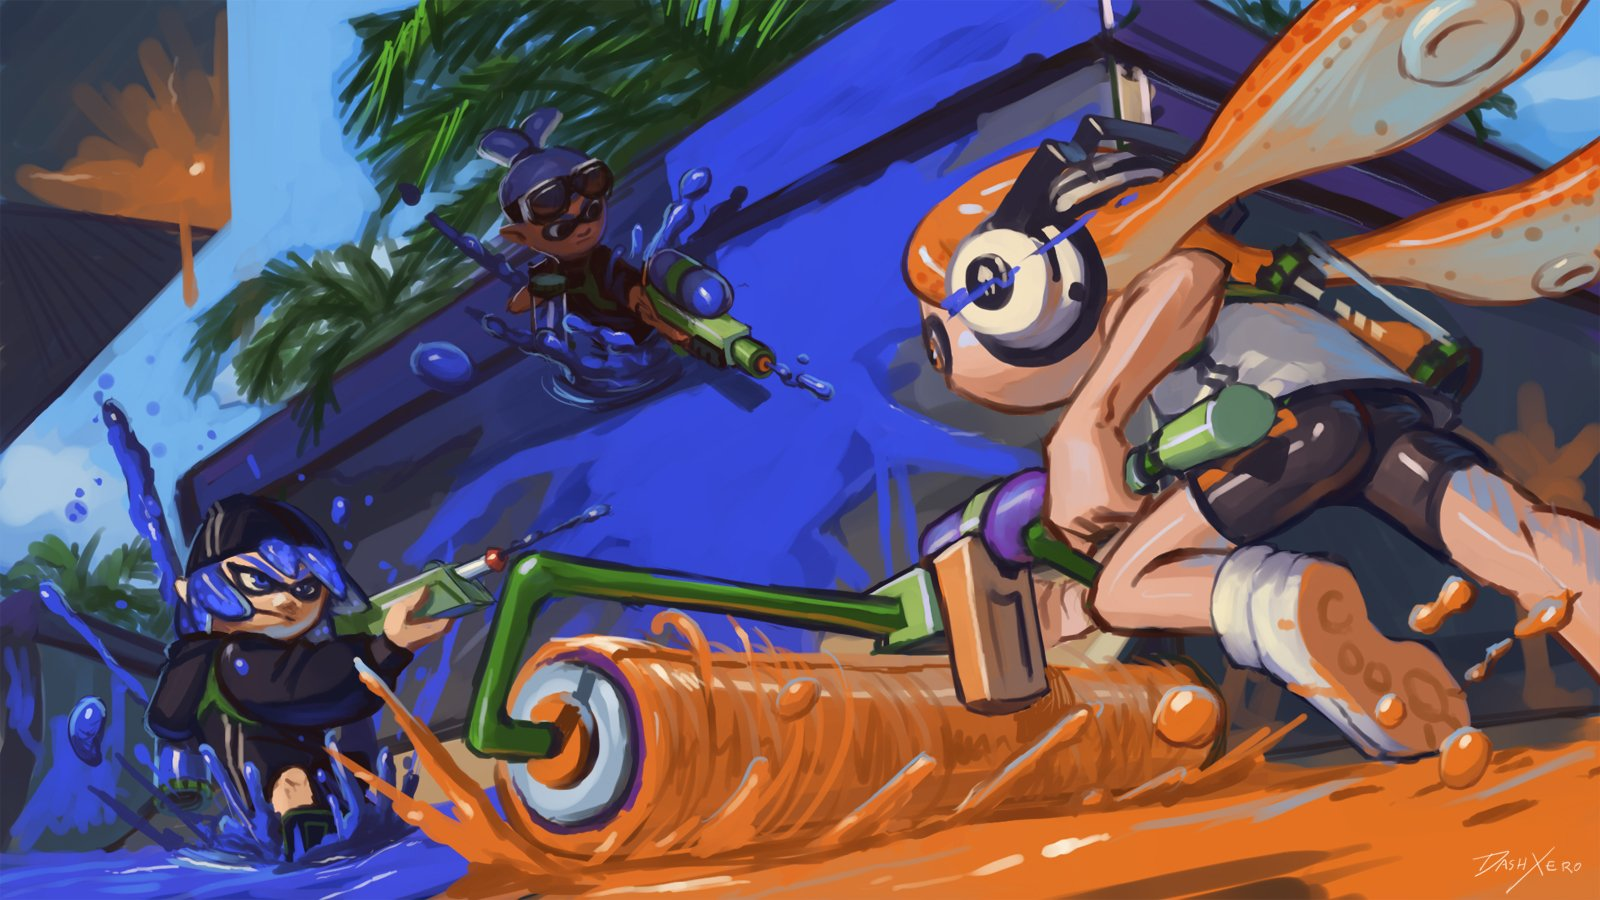 Video Game - Splatoon  Inkling (Splatoon) Wallpaper